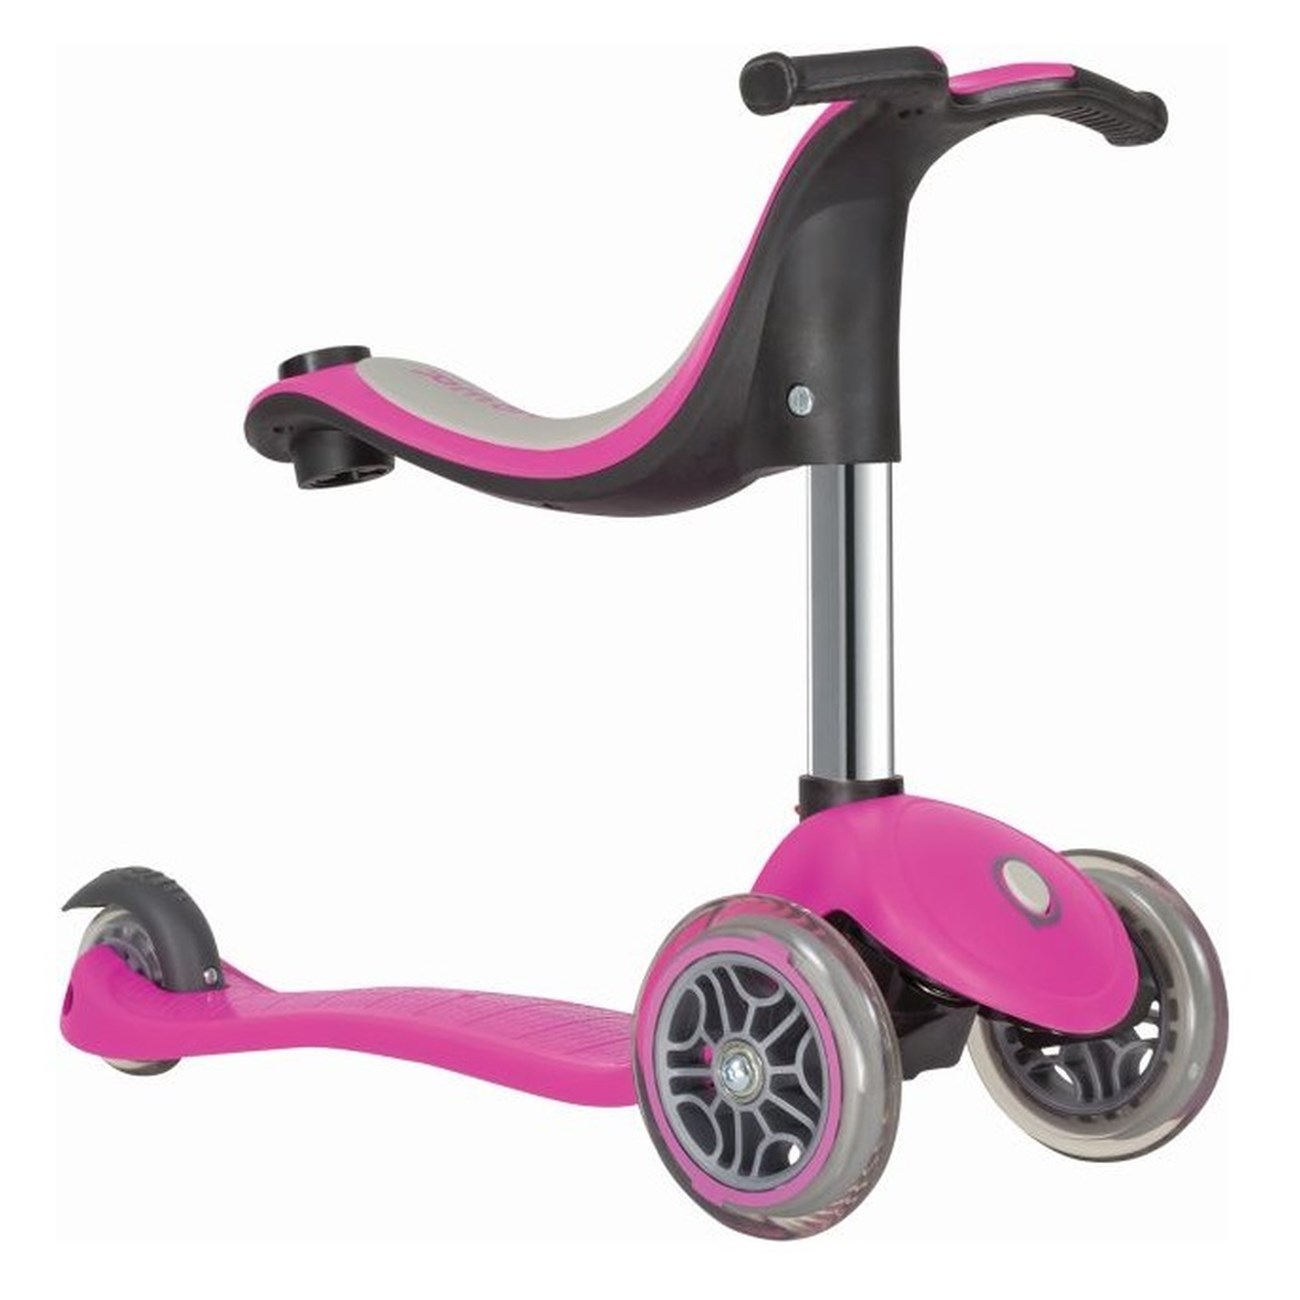 GLOBBER Πατίνι scooter Evo 4 In 1 451-110-2-0035 - INTERSPORT